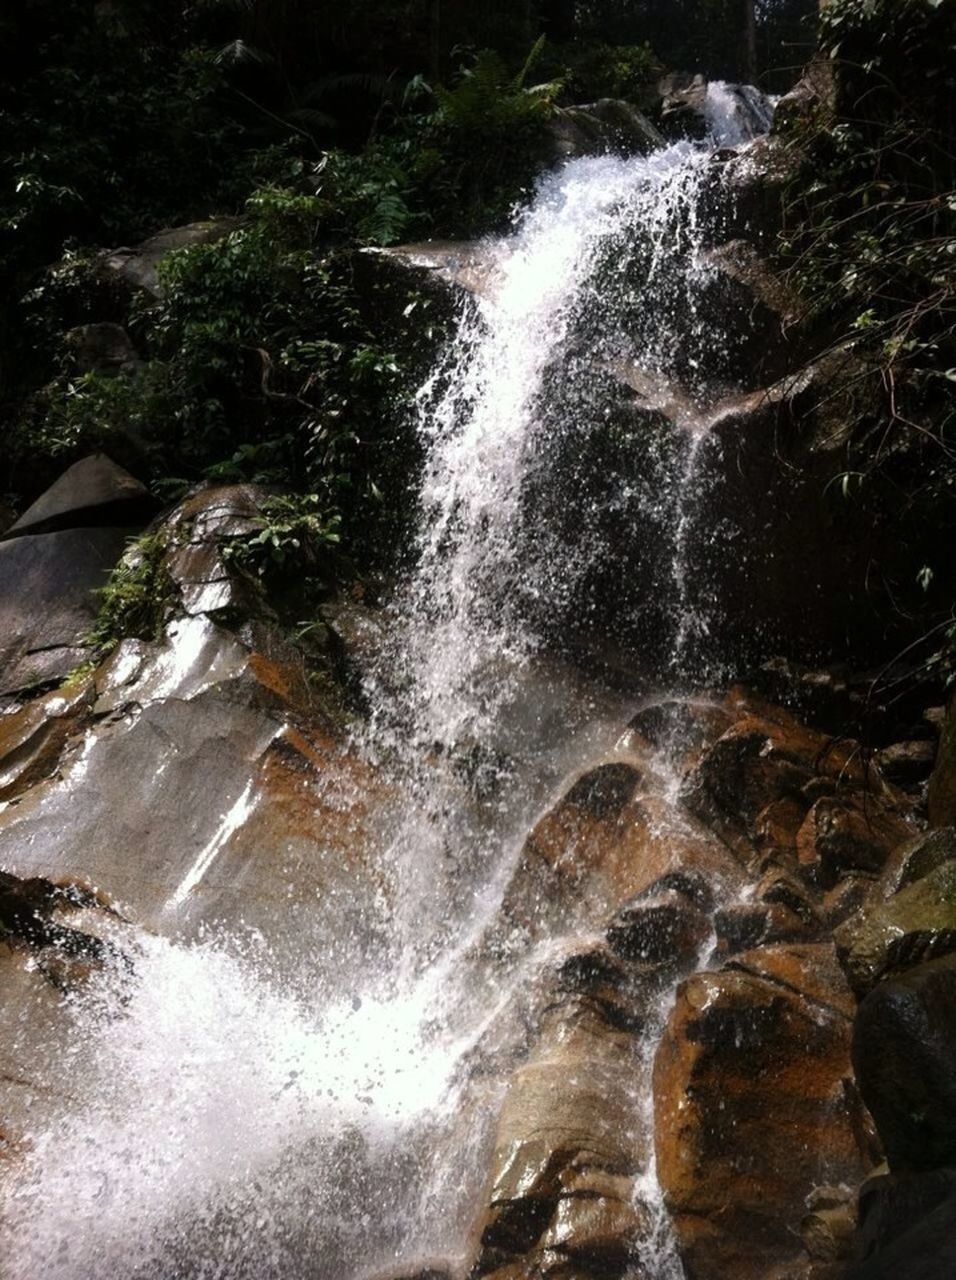 waterfall, water, motion, no people, beauty in nature, nature, scenics, outdoors, day, forest, tree, freshness